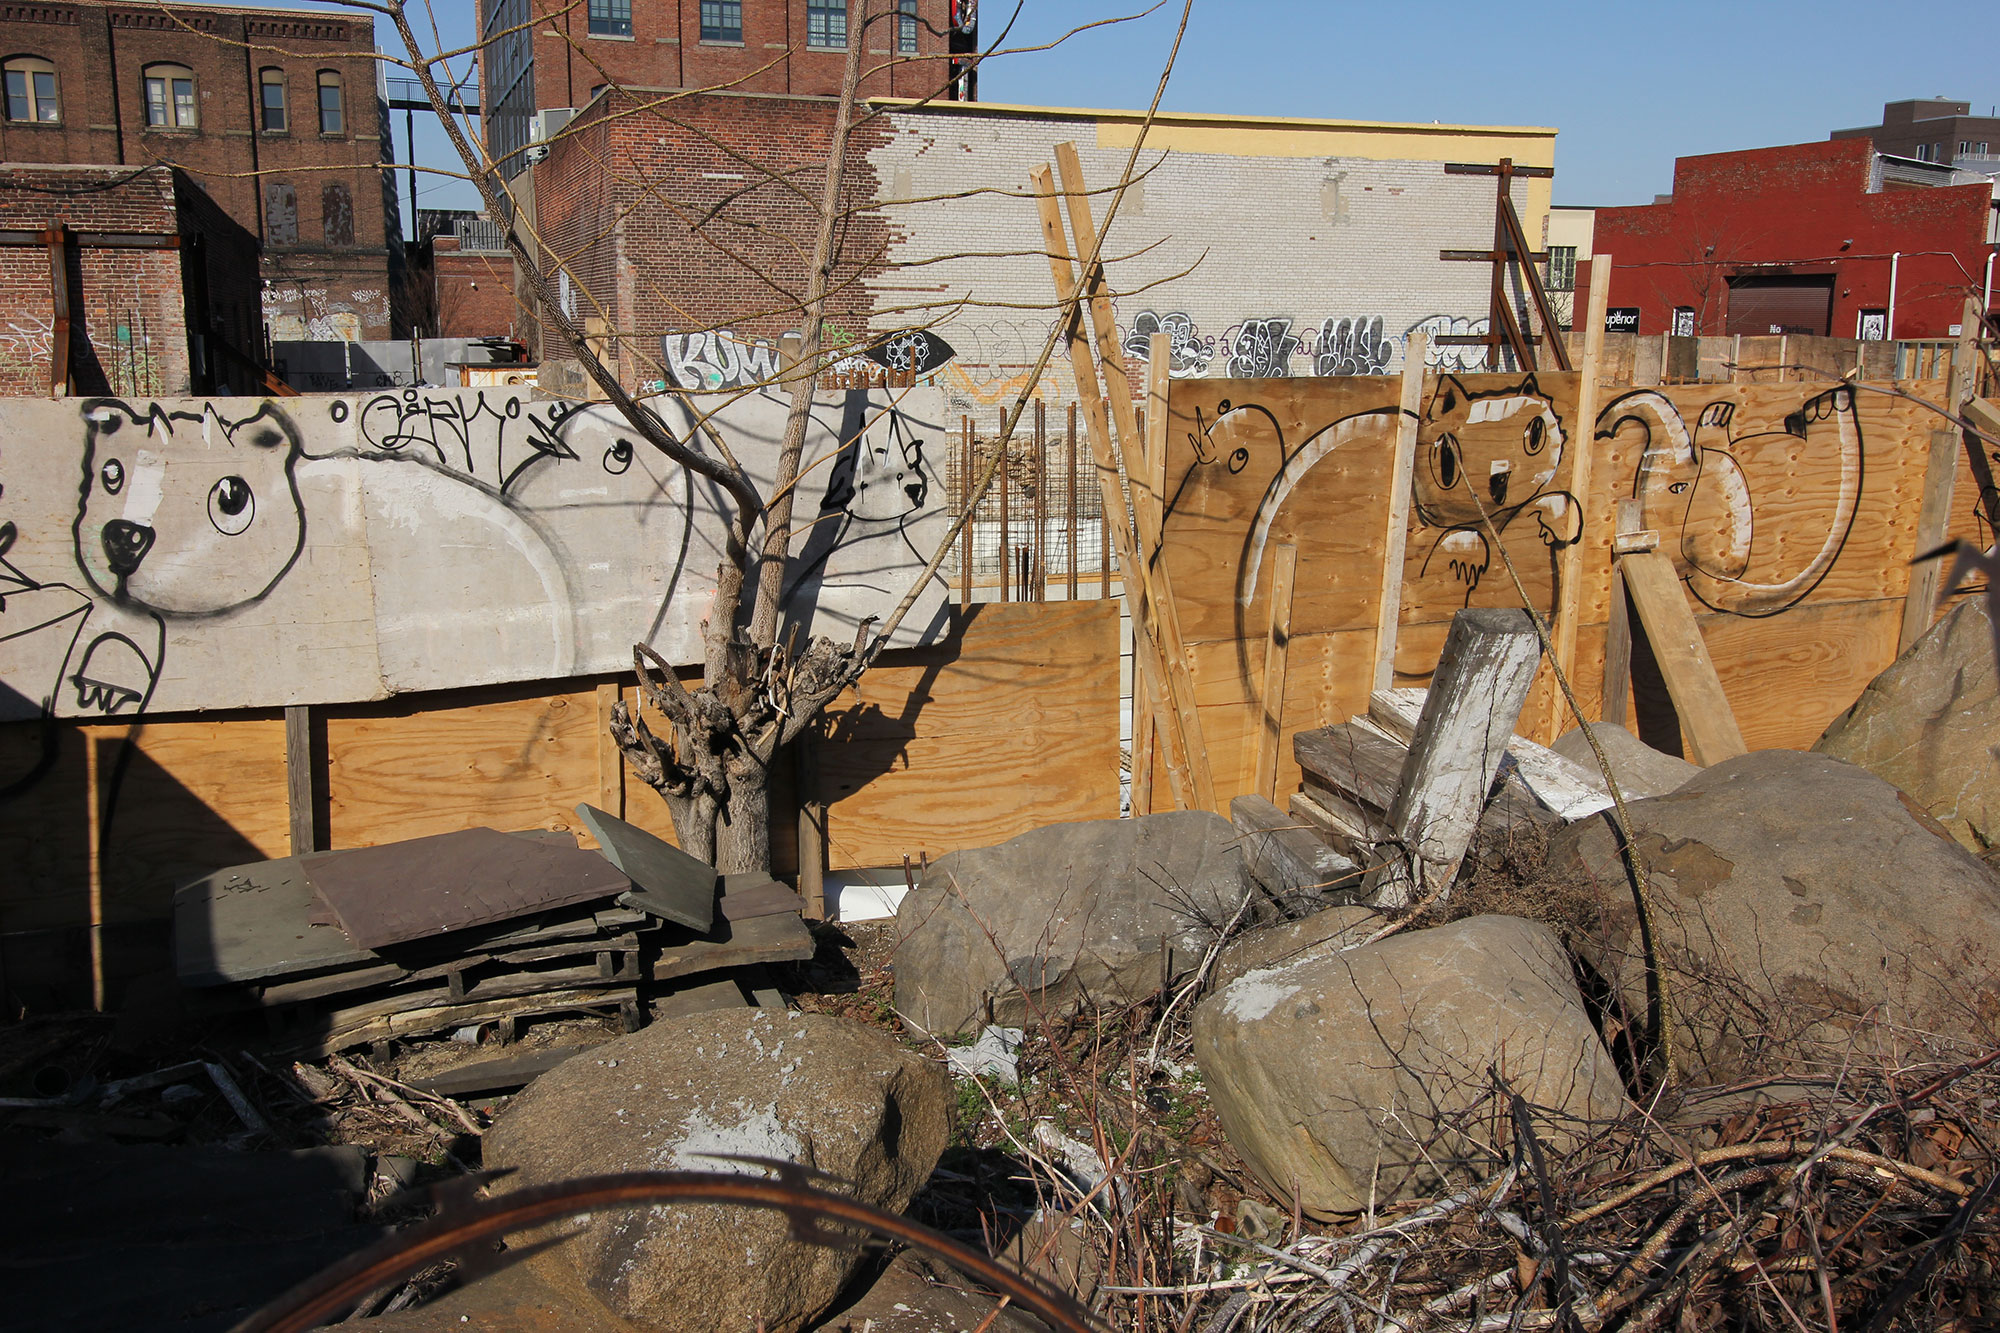 IMG_4740_Cernesto_Williamsburg_2014_WEB.jpg